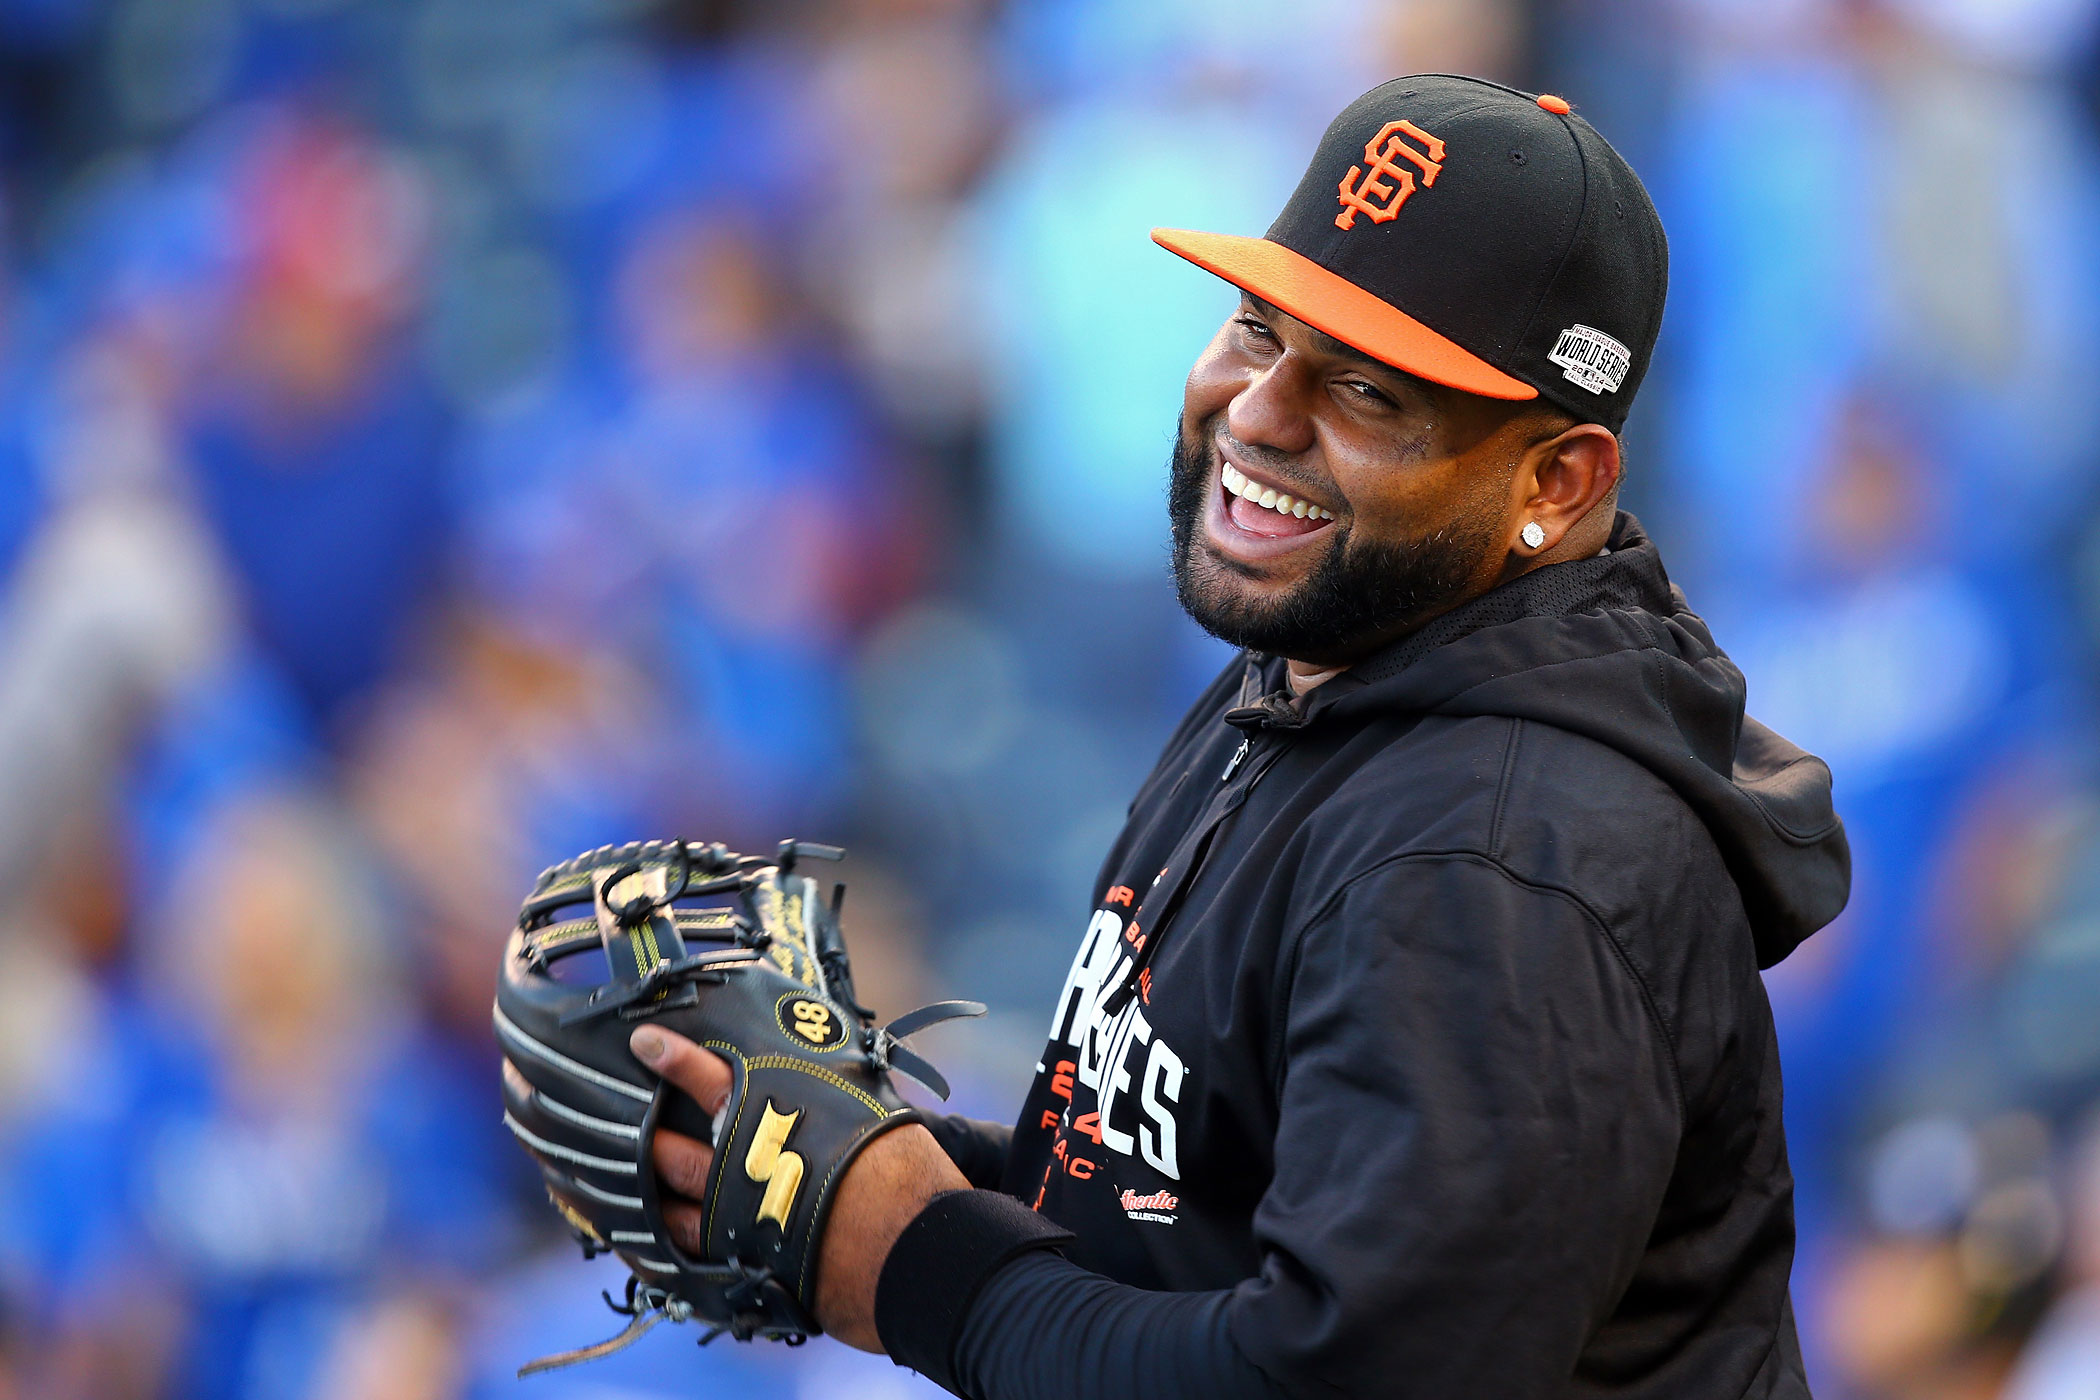 Pablo Sandoval of the San Francisco Giants warms up before Game Two of the 2014 World Series against the Kansas City Royals at Kauffman Stadium on October 22, 2014 in Kansas City, Missouri.